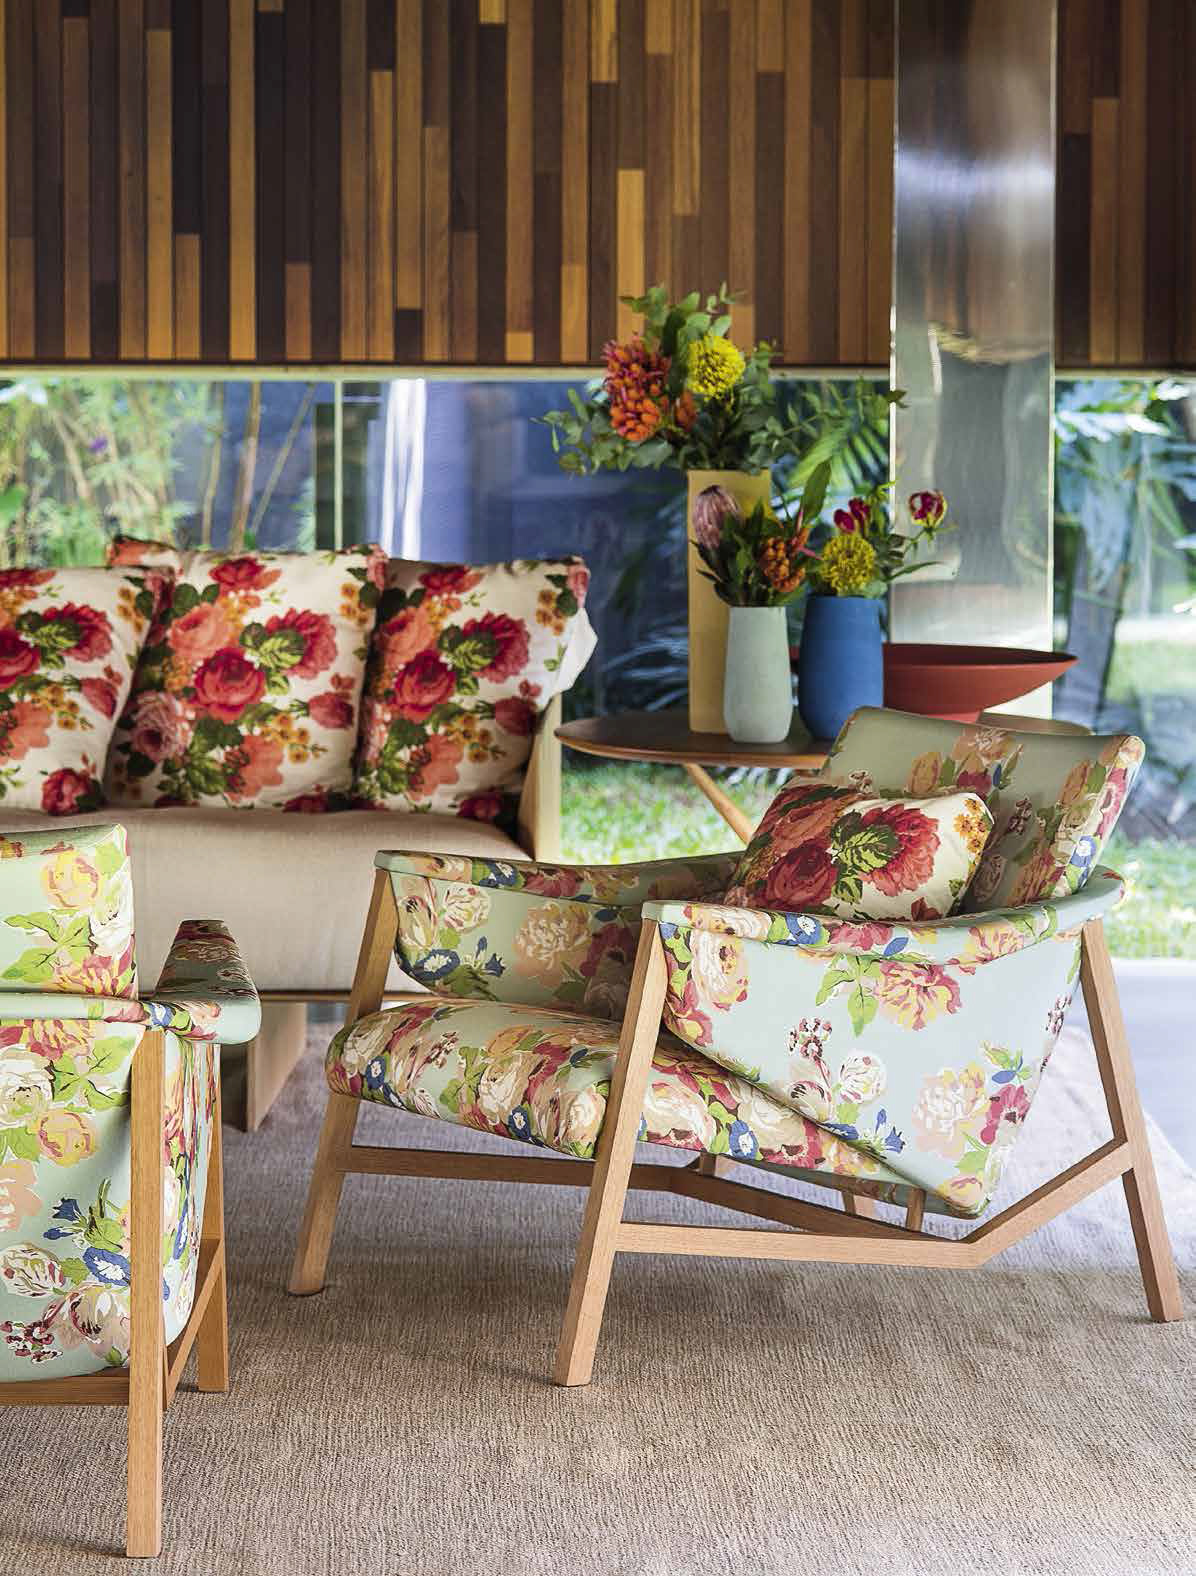 3-estampas-florais-no-decor-para-celebrar-o-verao